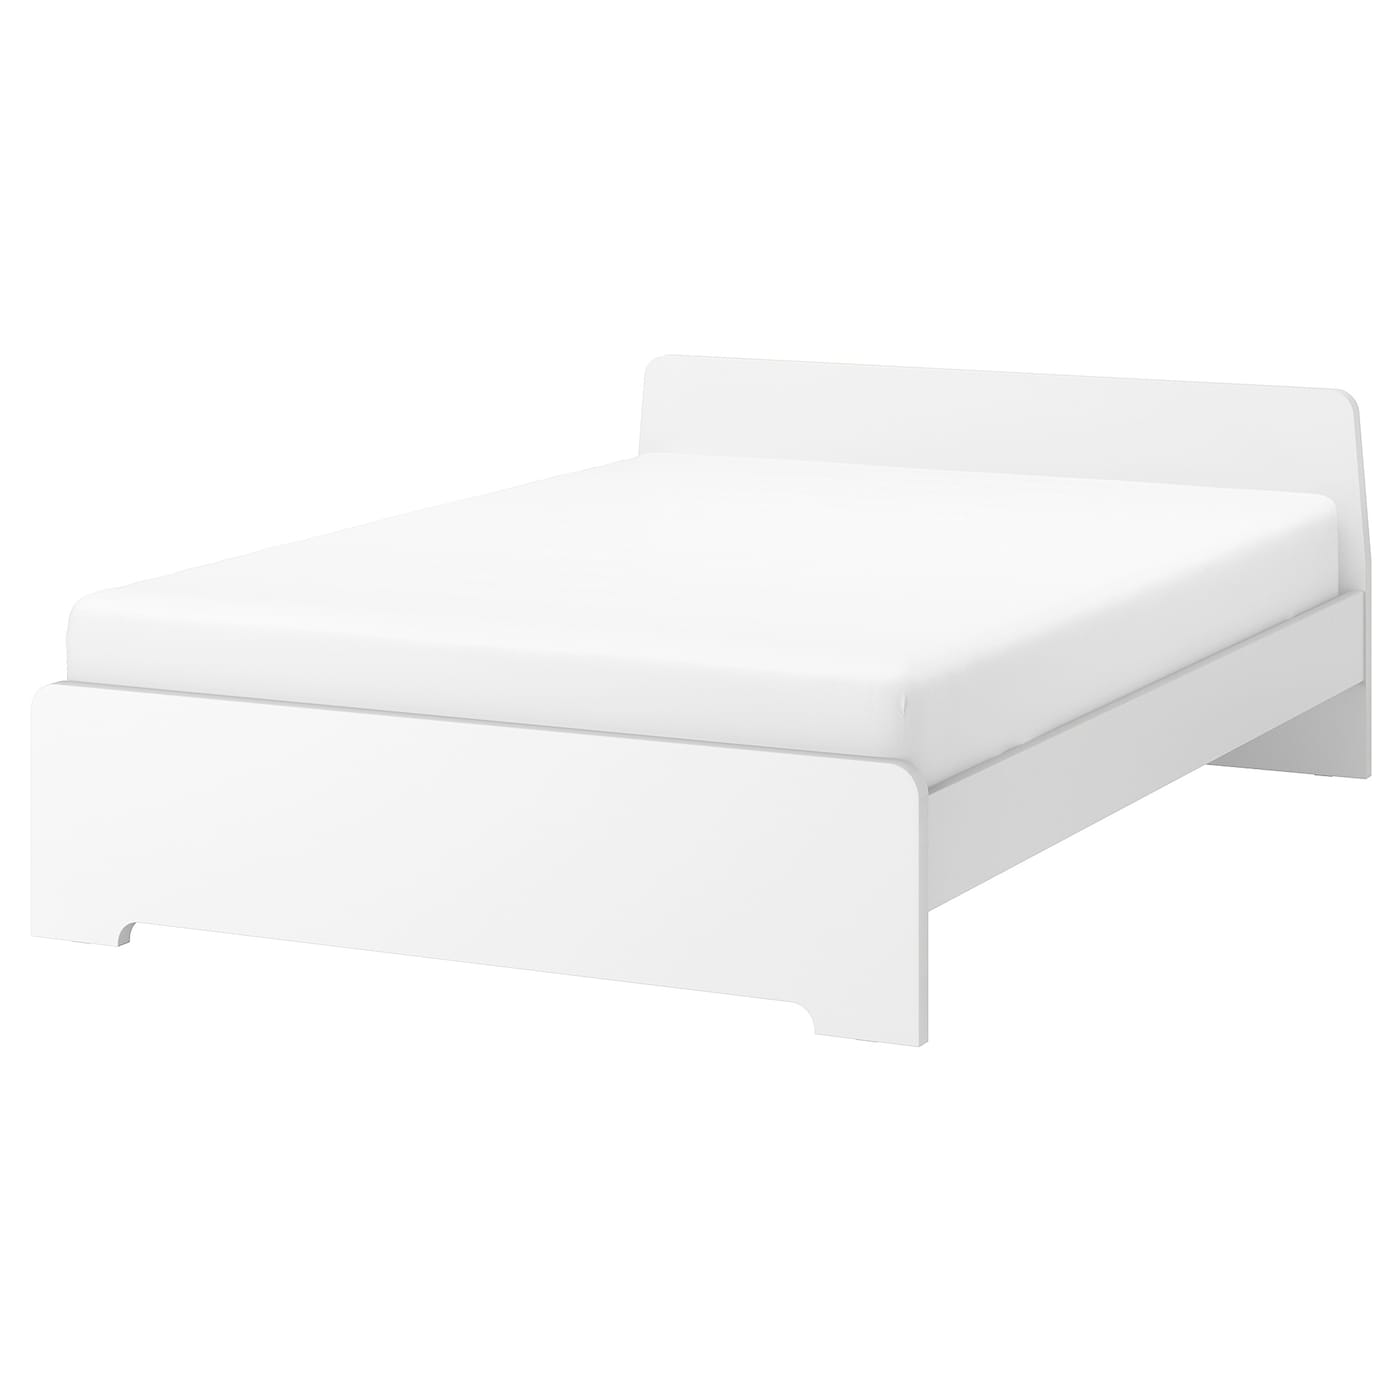 askvoll cadre de lit blanc 140 x 200 cm ikea. Black Bedroom Furniture Sets. Home Design Ideas